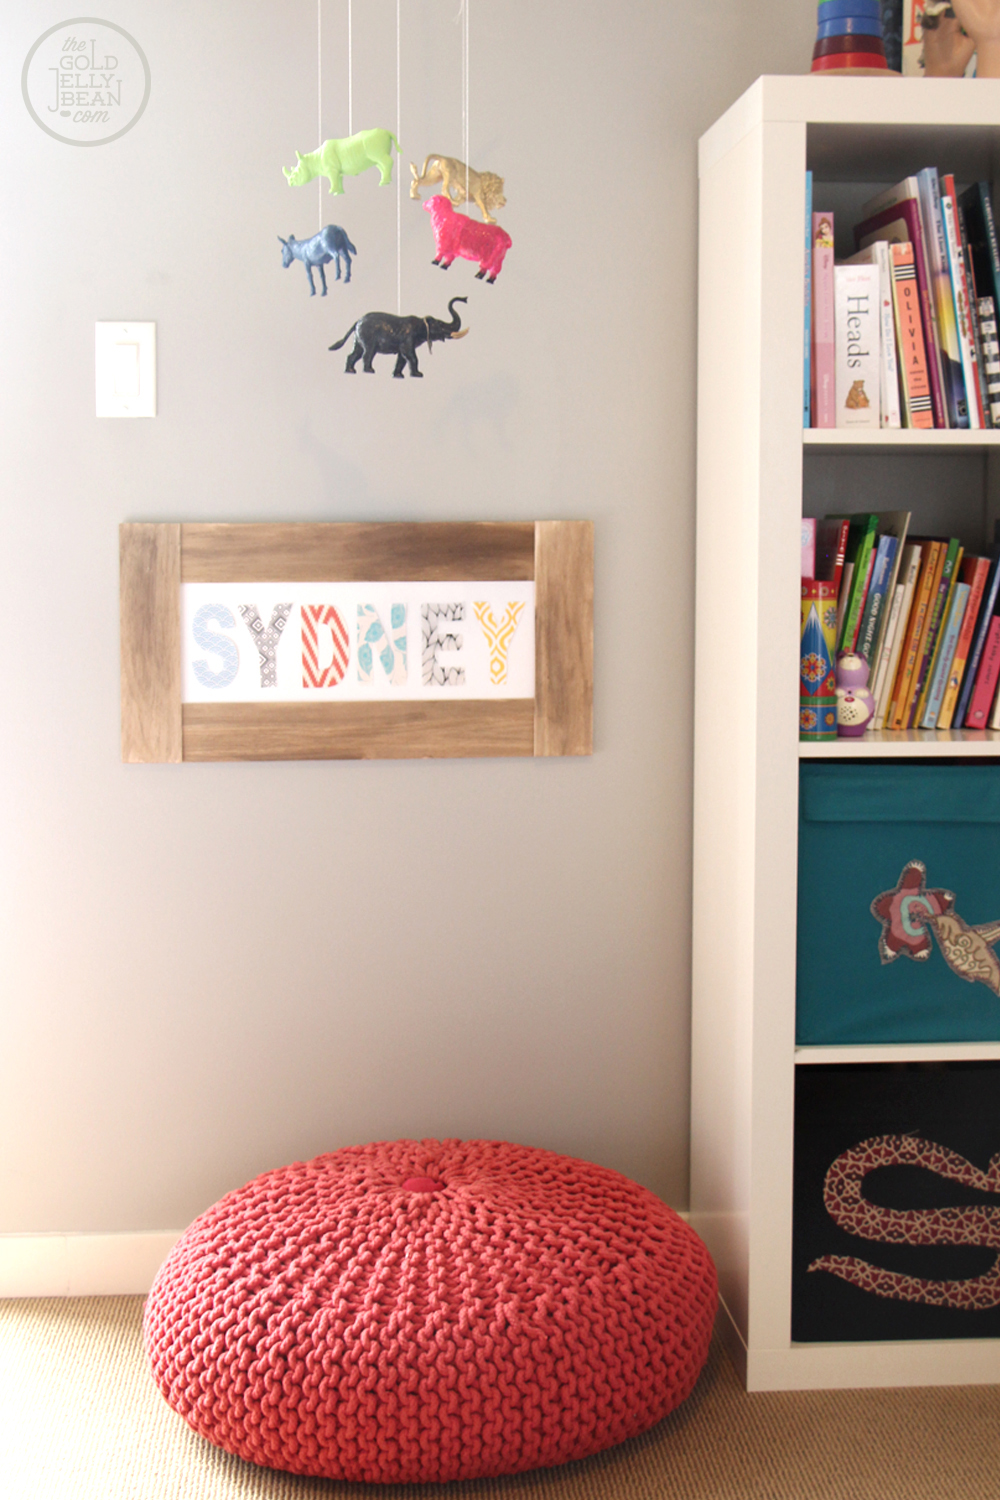 DIY Pattern Name Sign, via www.thegoldjellybean.com